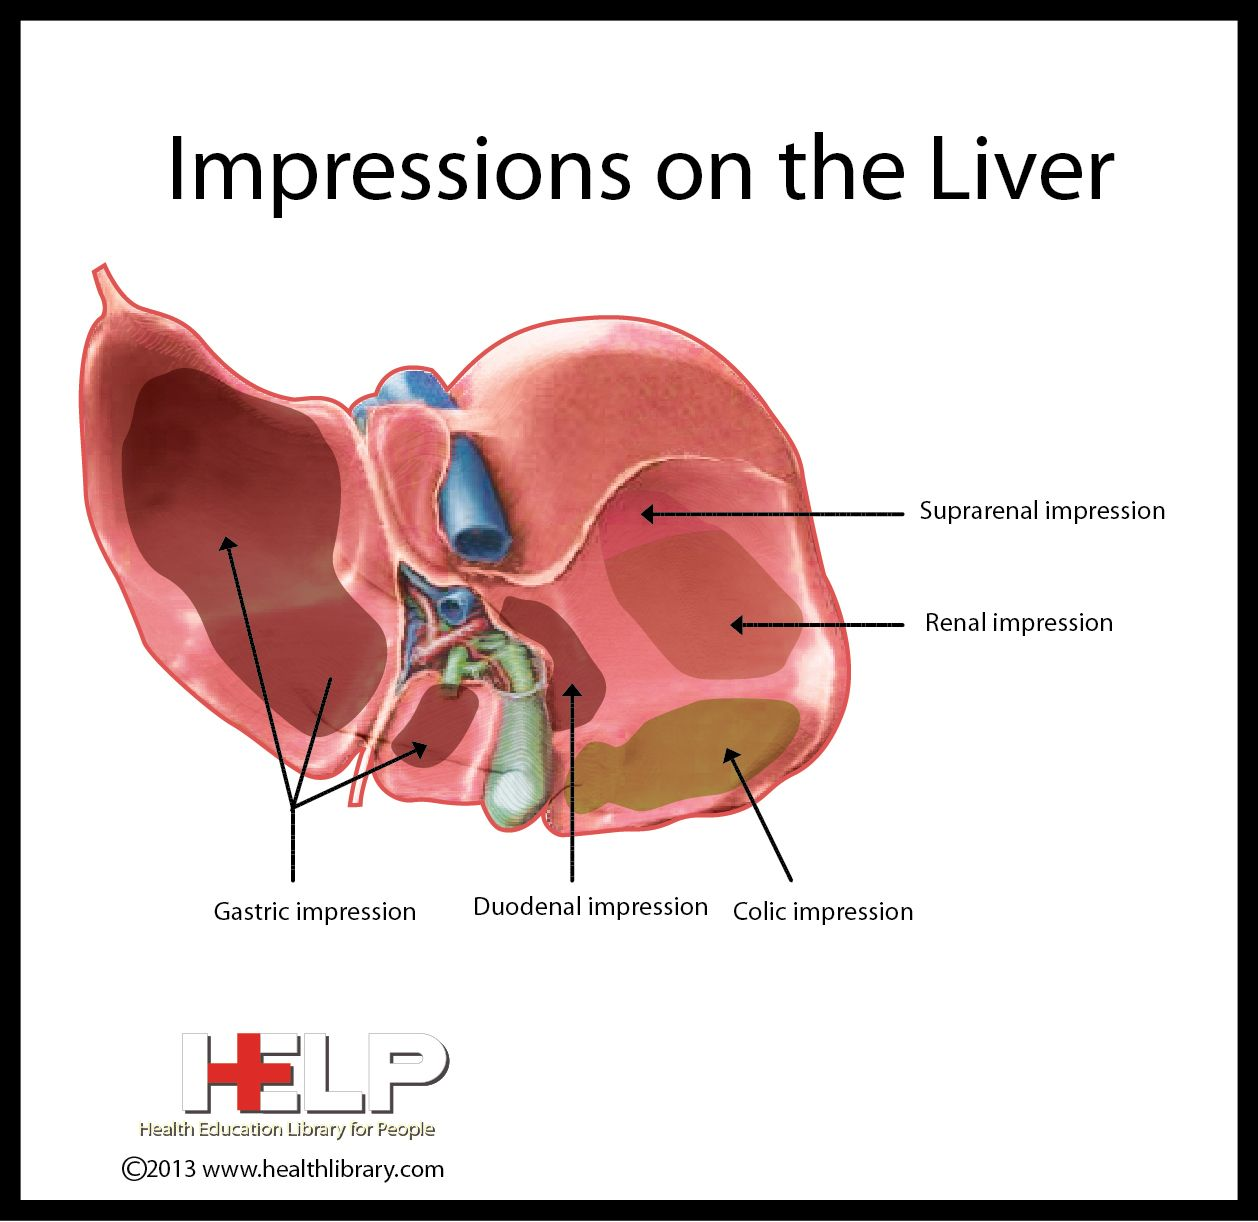 Impressions On The Liver | Gastrointestinal system, Liver, Physiology